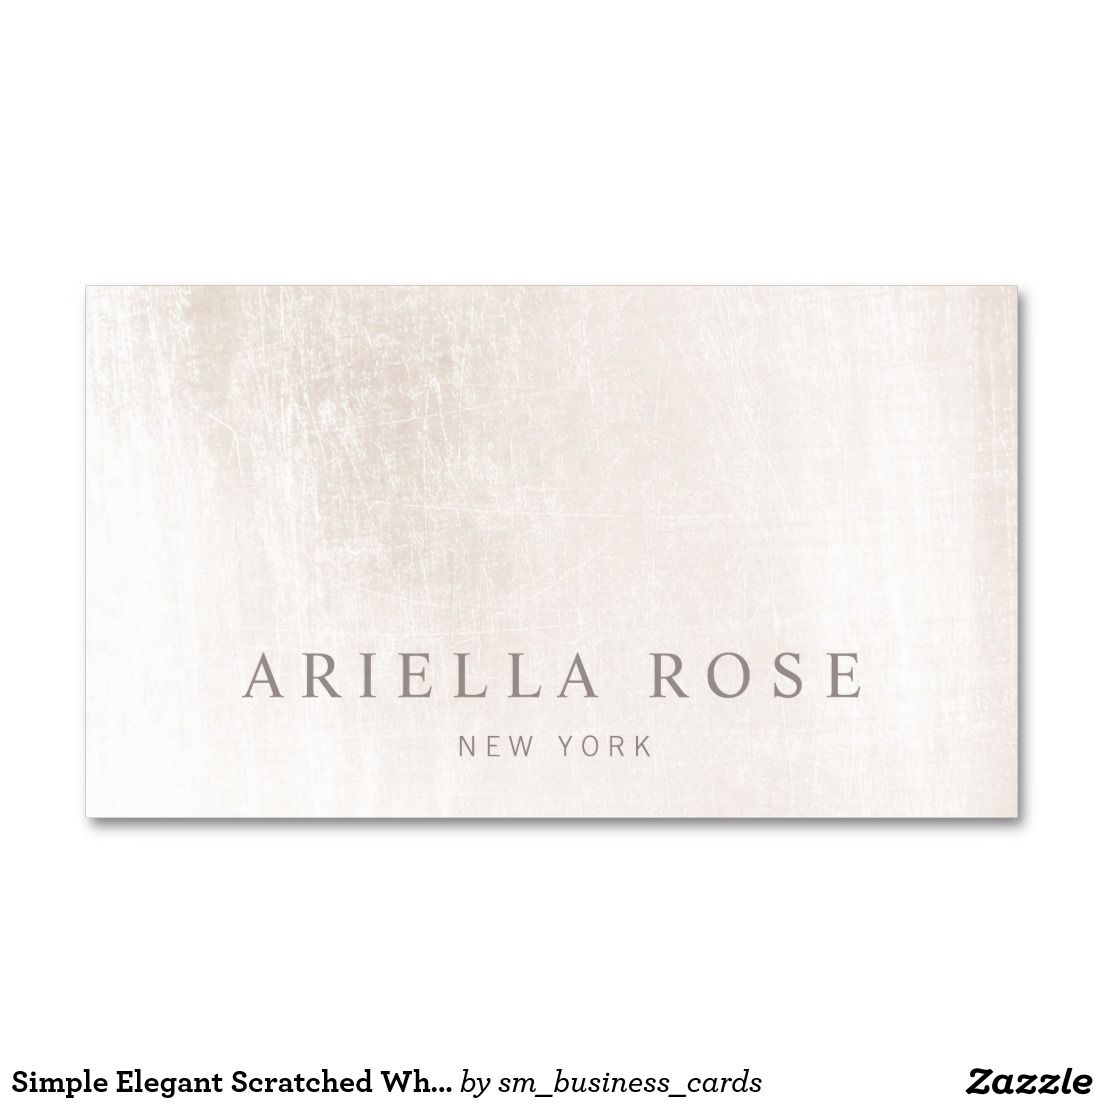 Simple Elegant Brushed White Marble Professional Business Card ...